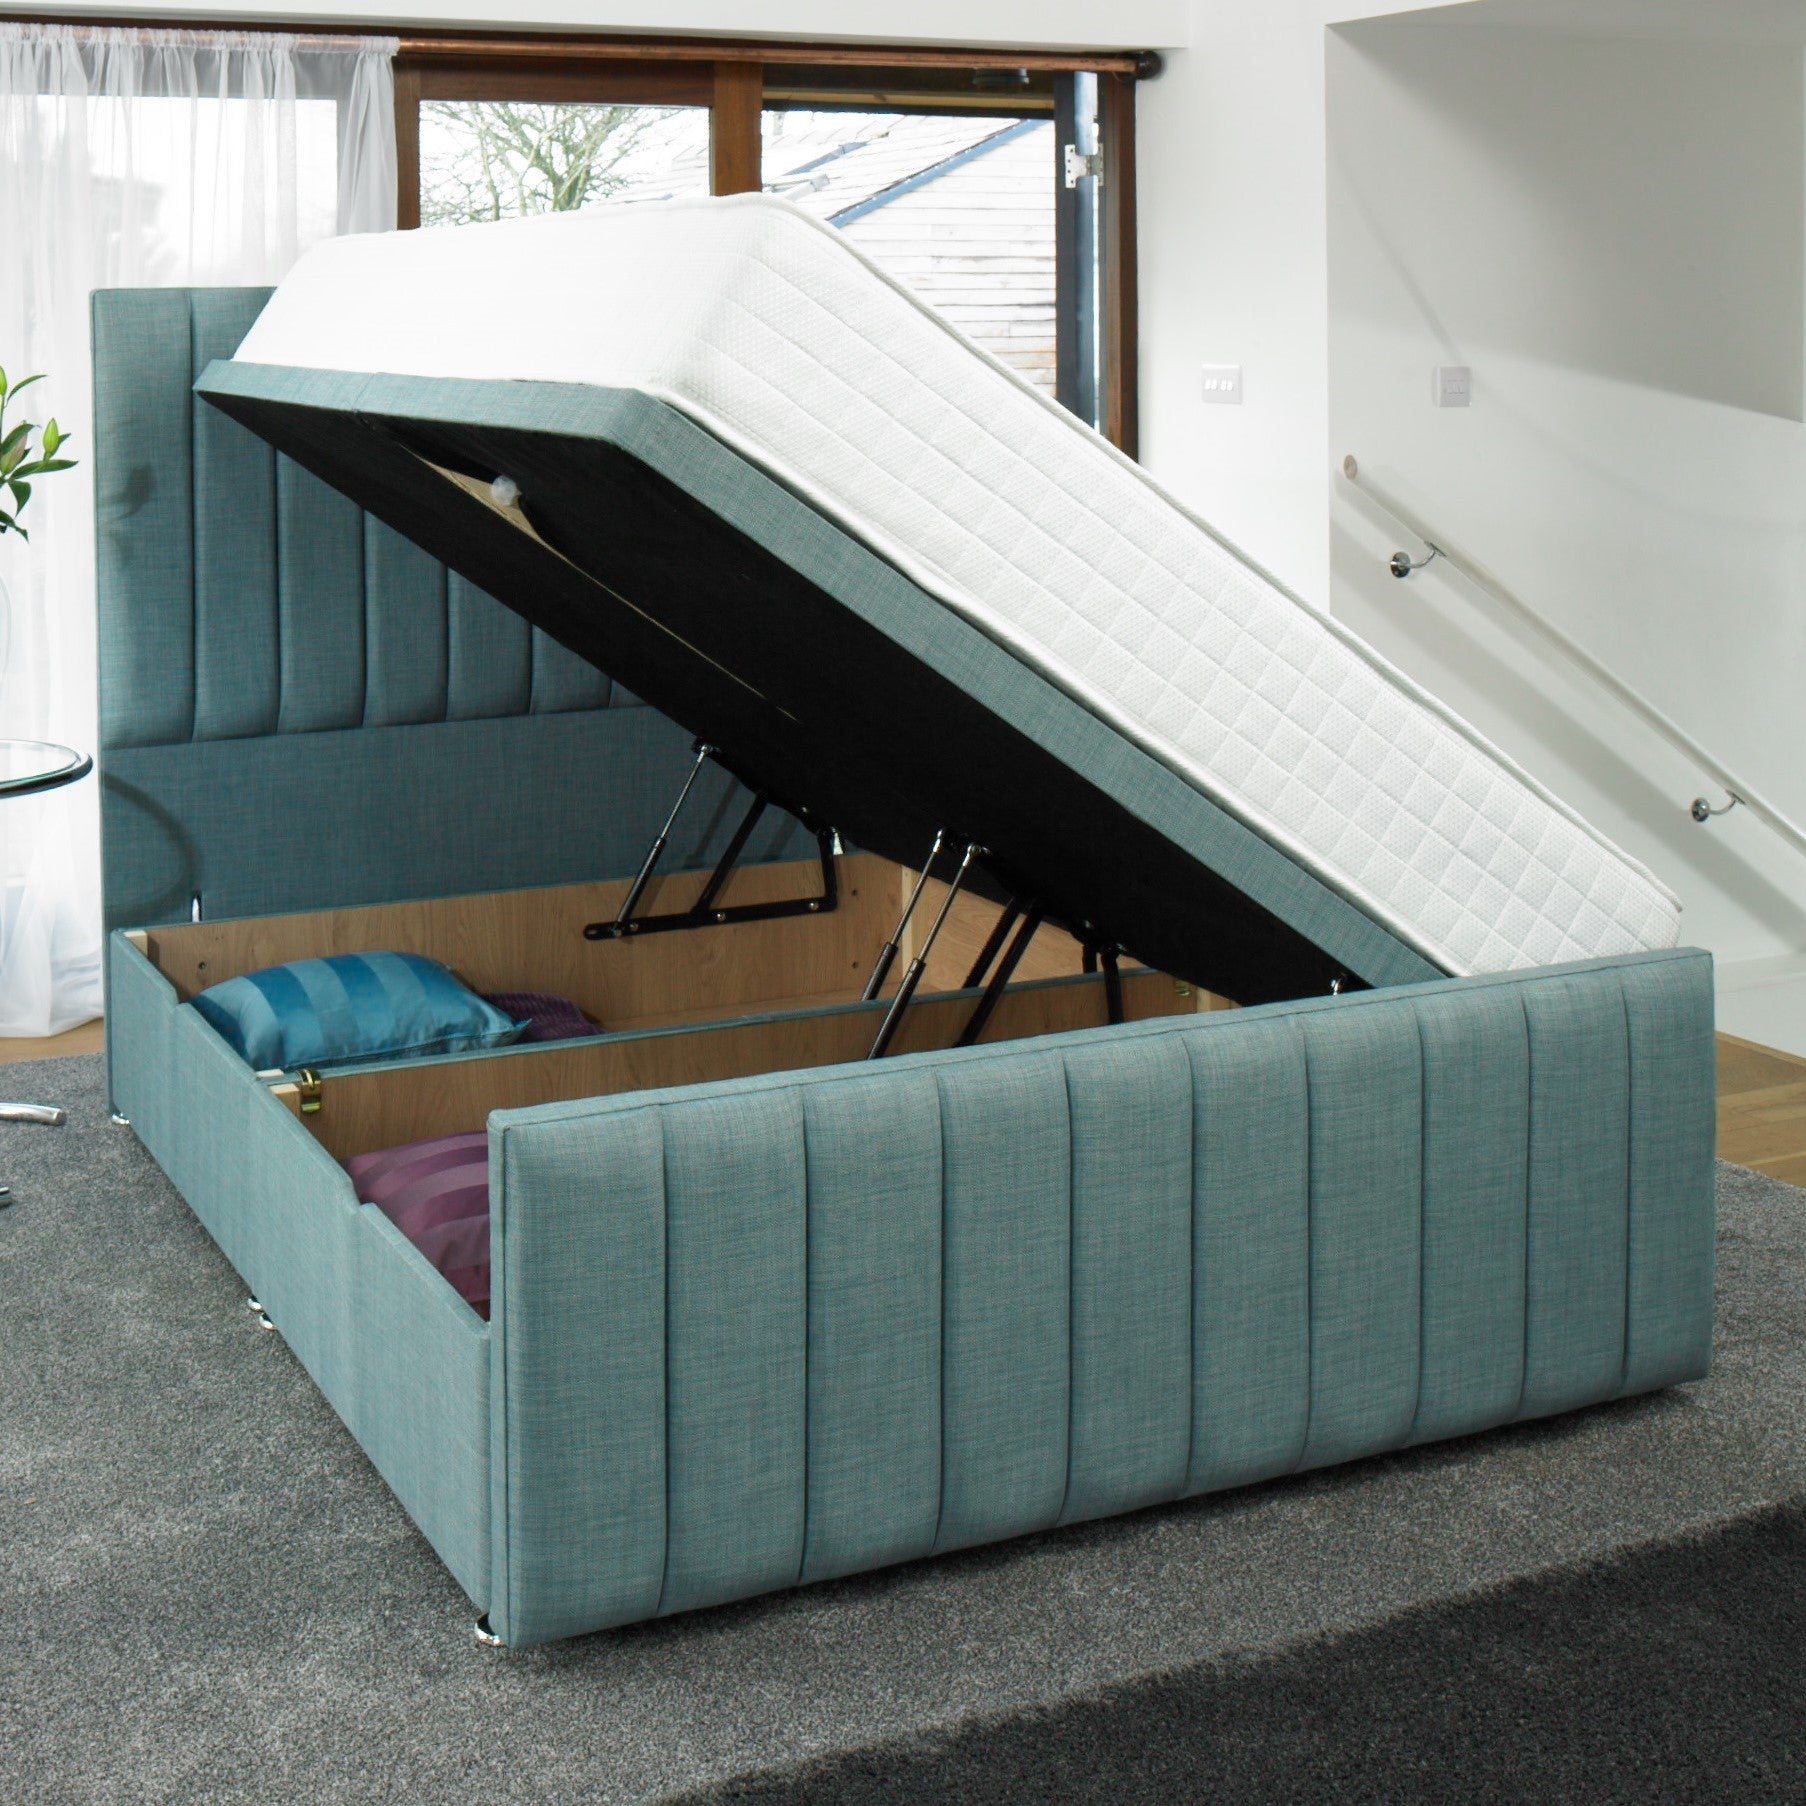 Coniston Striped Ottoman Bed Bespoke Beds Chic Concept